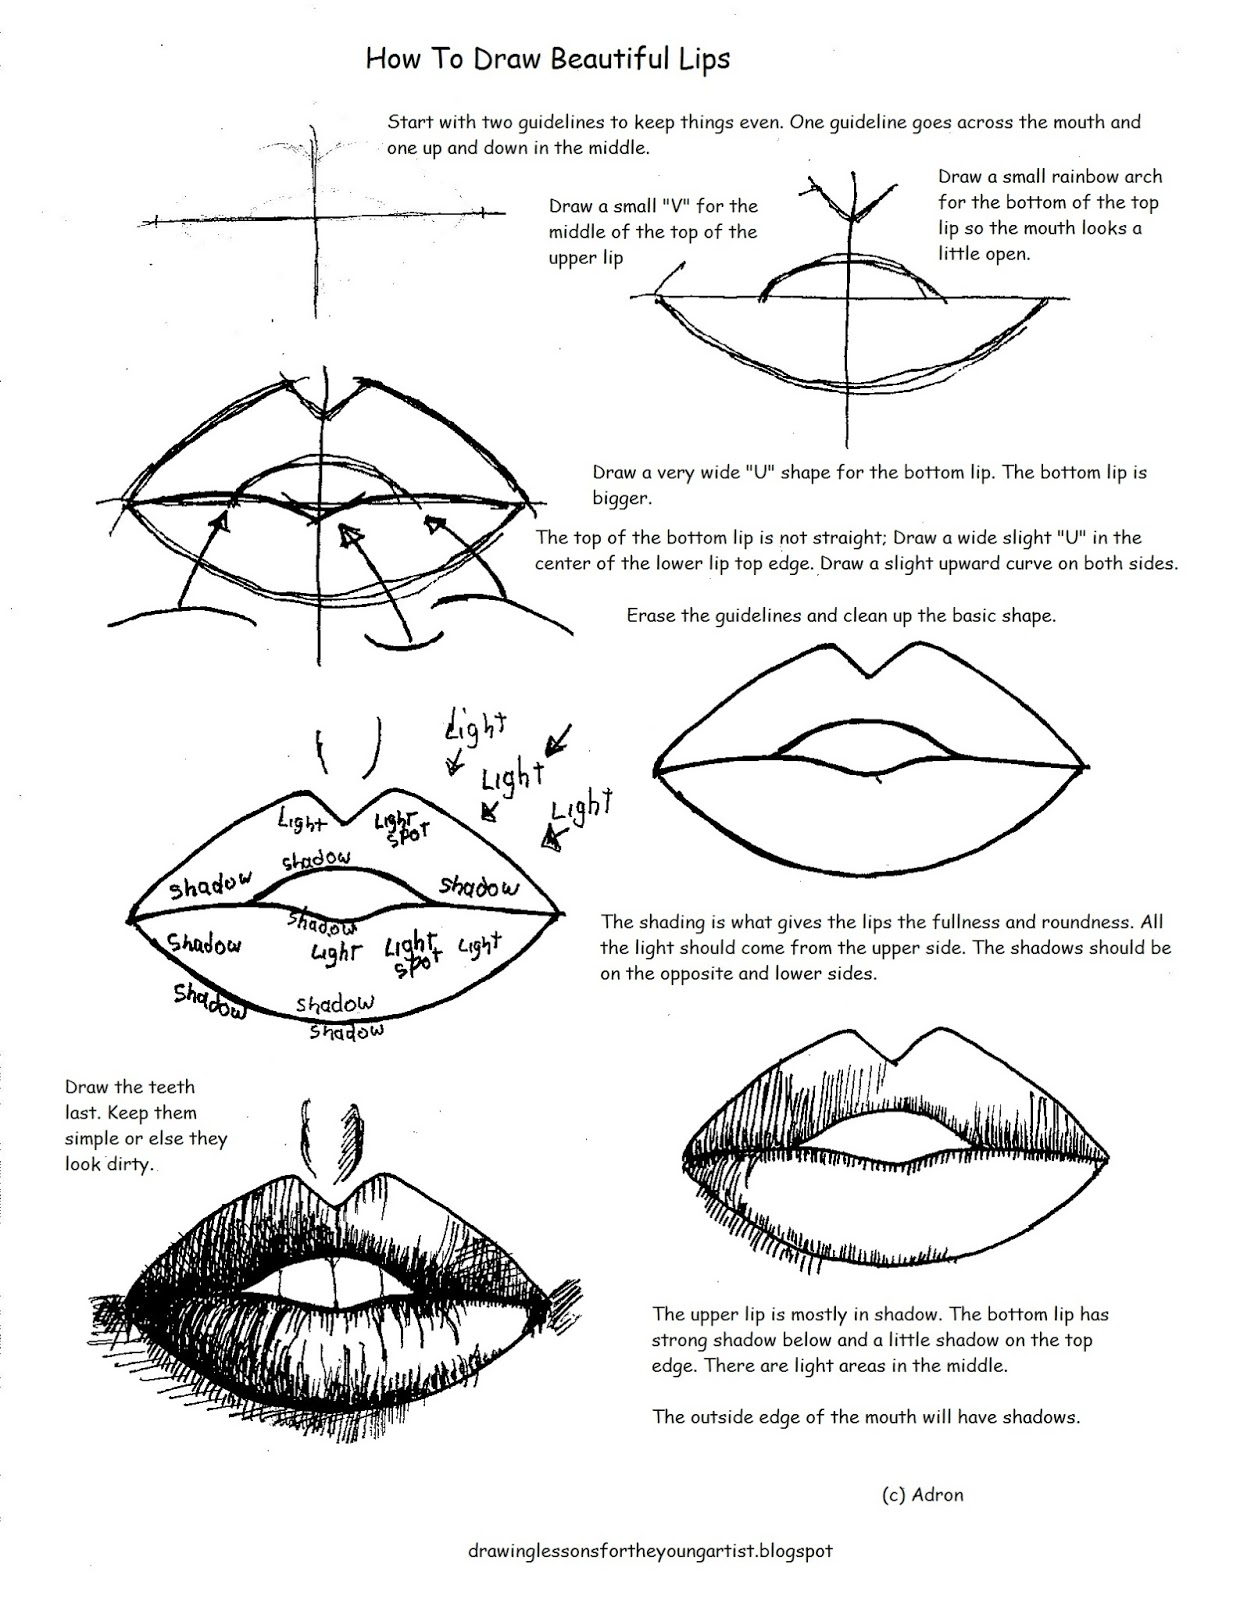 worksheet How To Draw Worksheets how to draw worksheets for the young artist beautiful lips printable worksheet